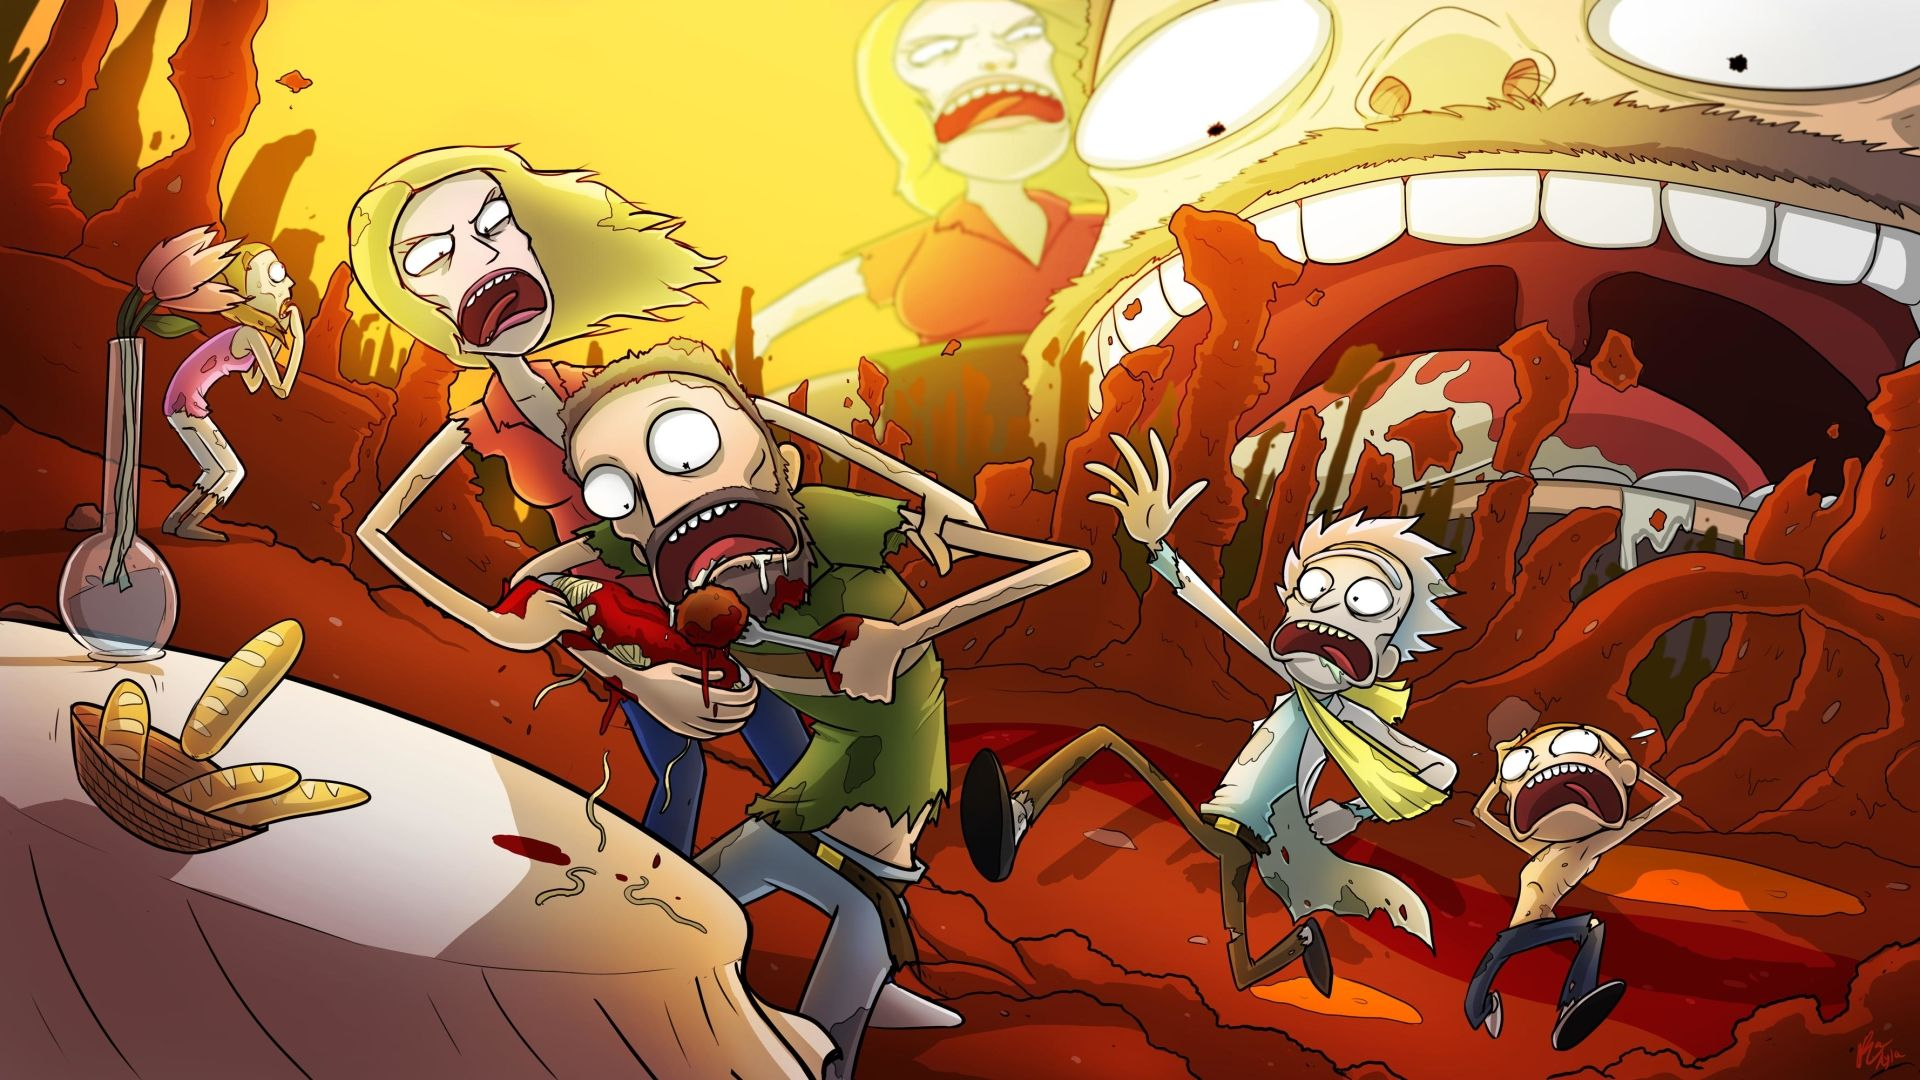 rick and morty walpaper, rick and morty 1920x1080 wallpaper